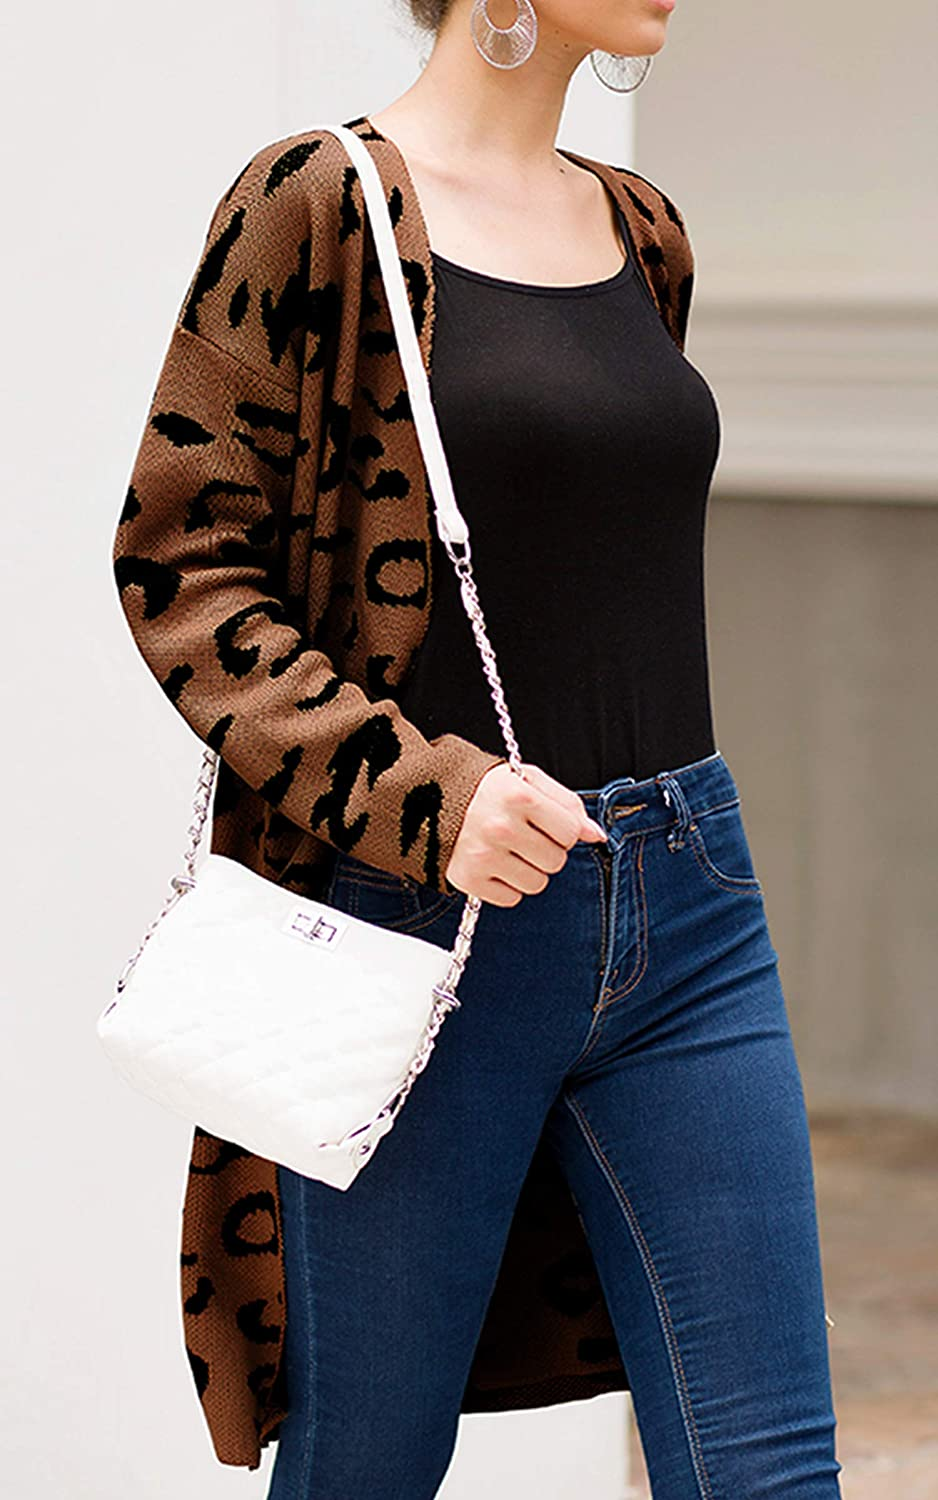 Angashion Womens Long Sleeves Leopard Print Knitting Cardigan Open Front Warm Sweater Outwear Coats with Pocket